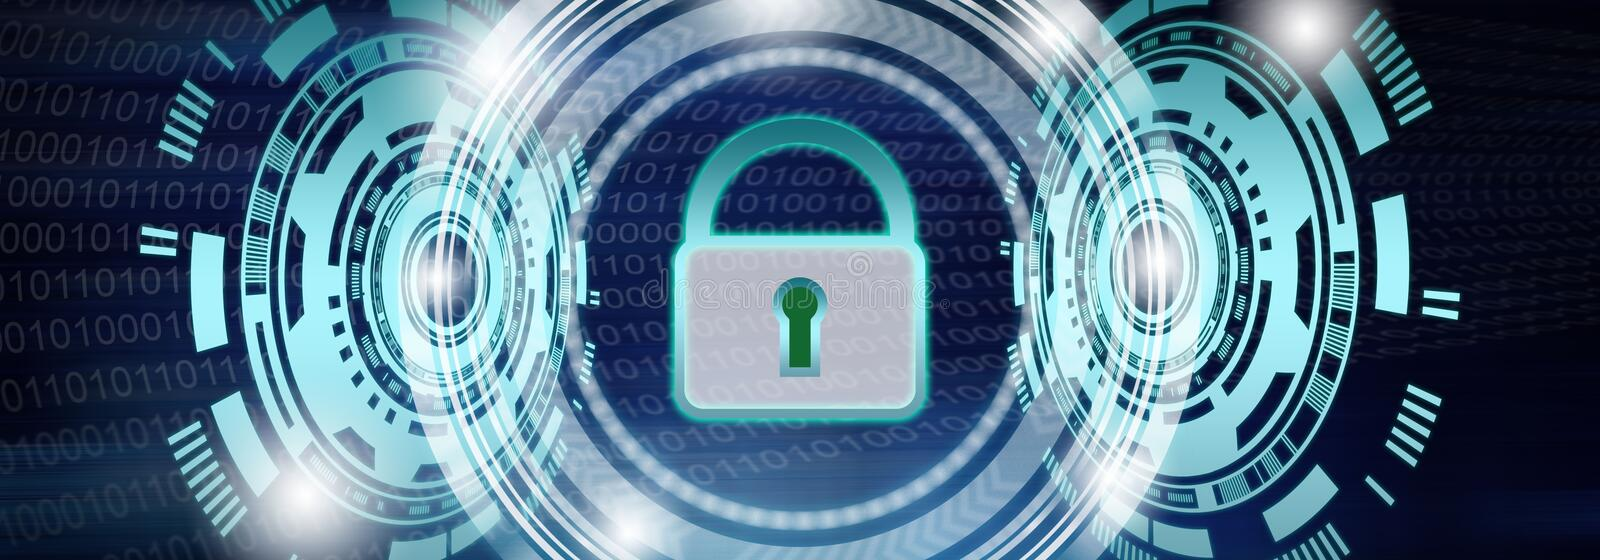 Concept of data security stock illustration